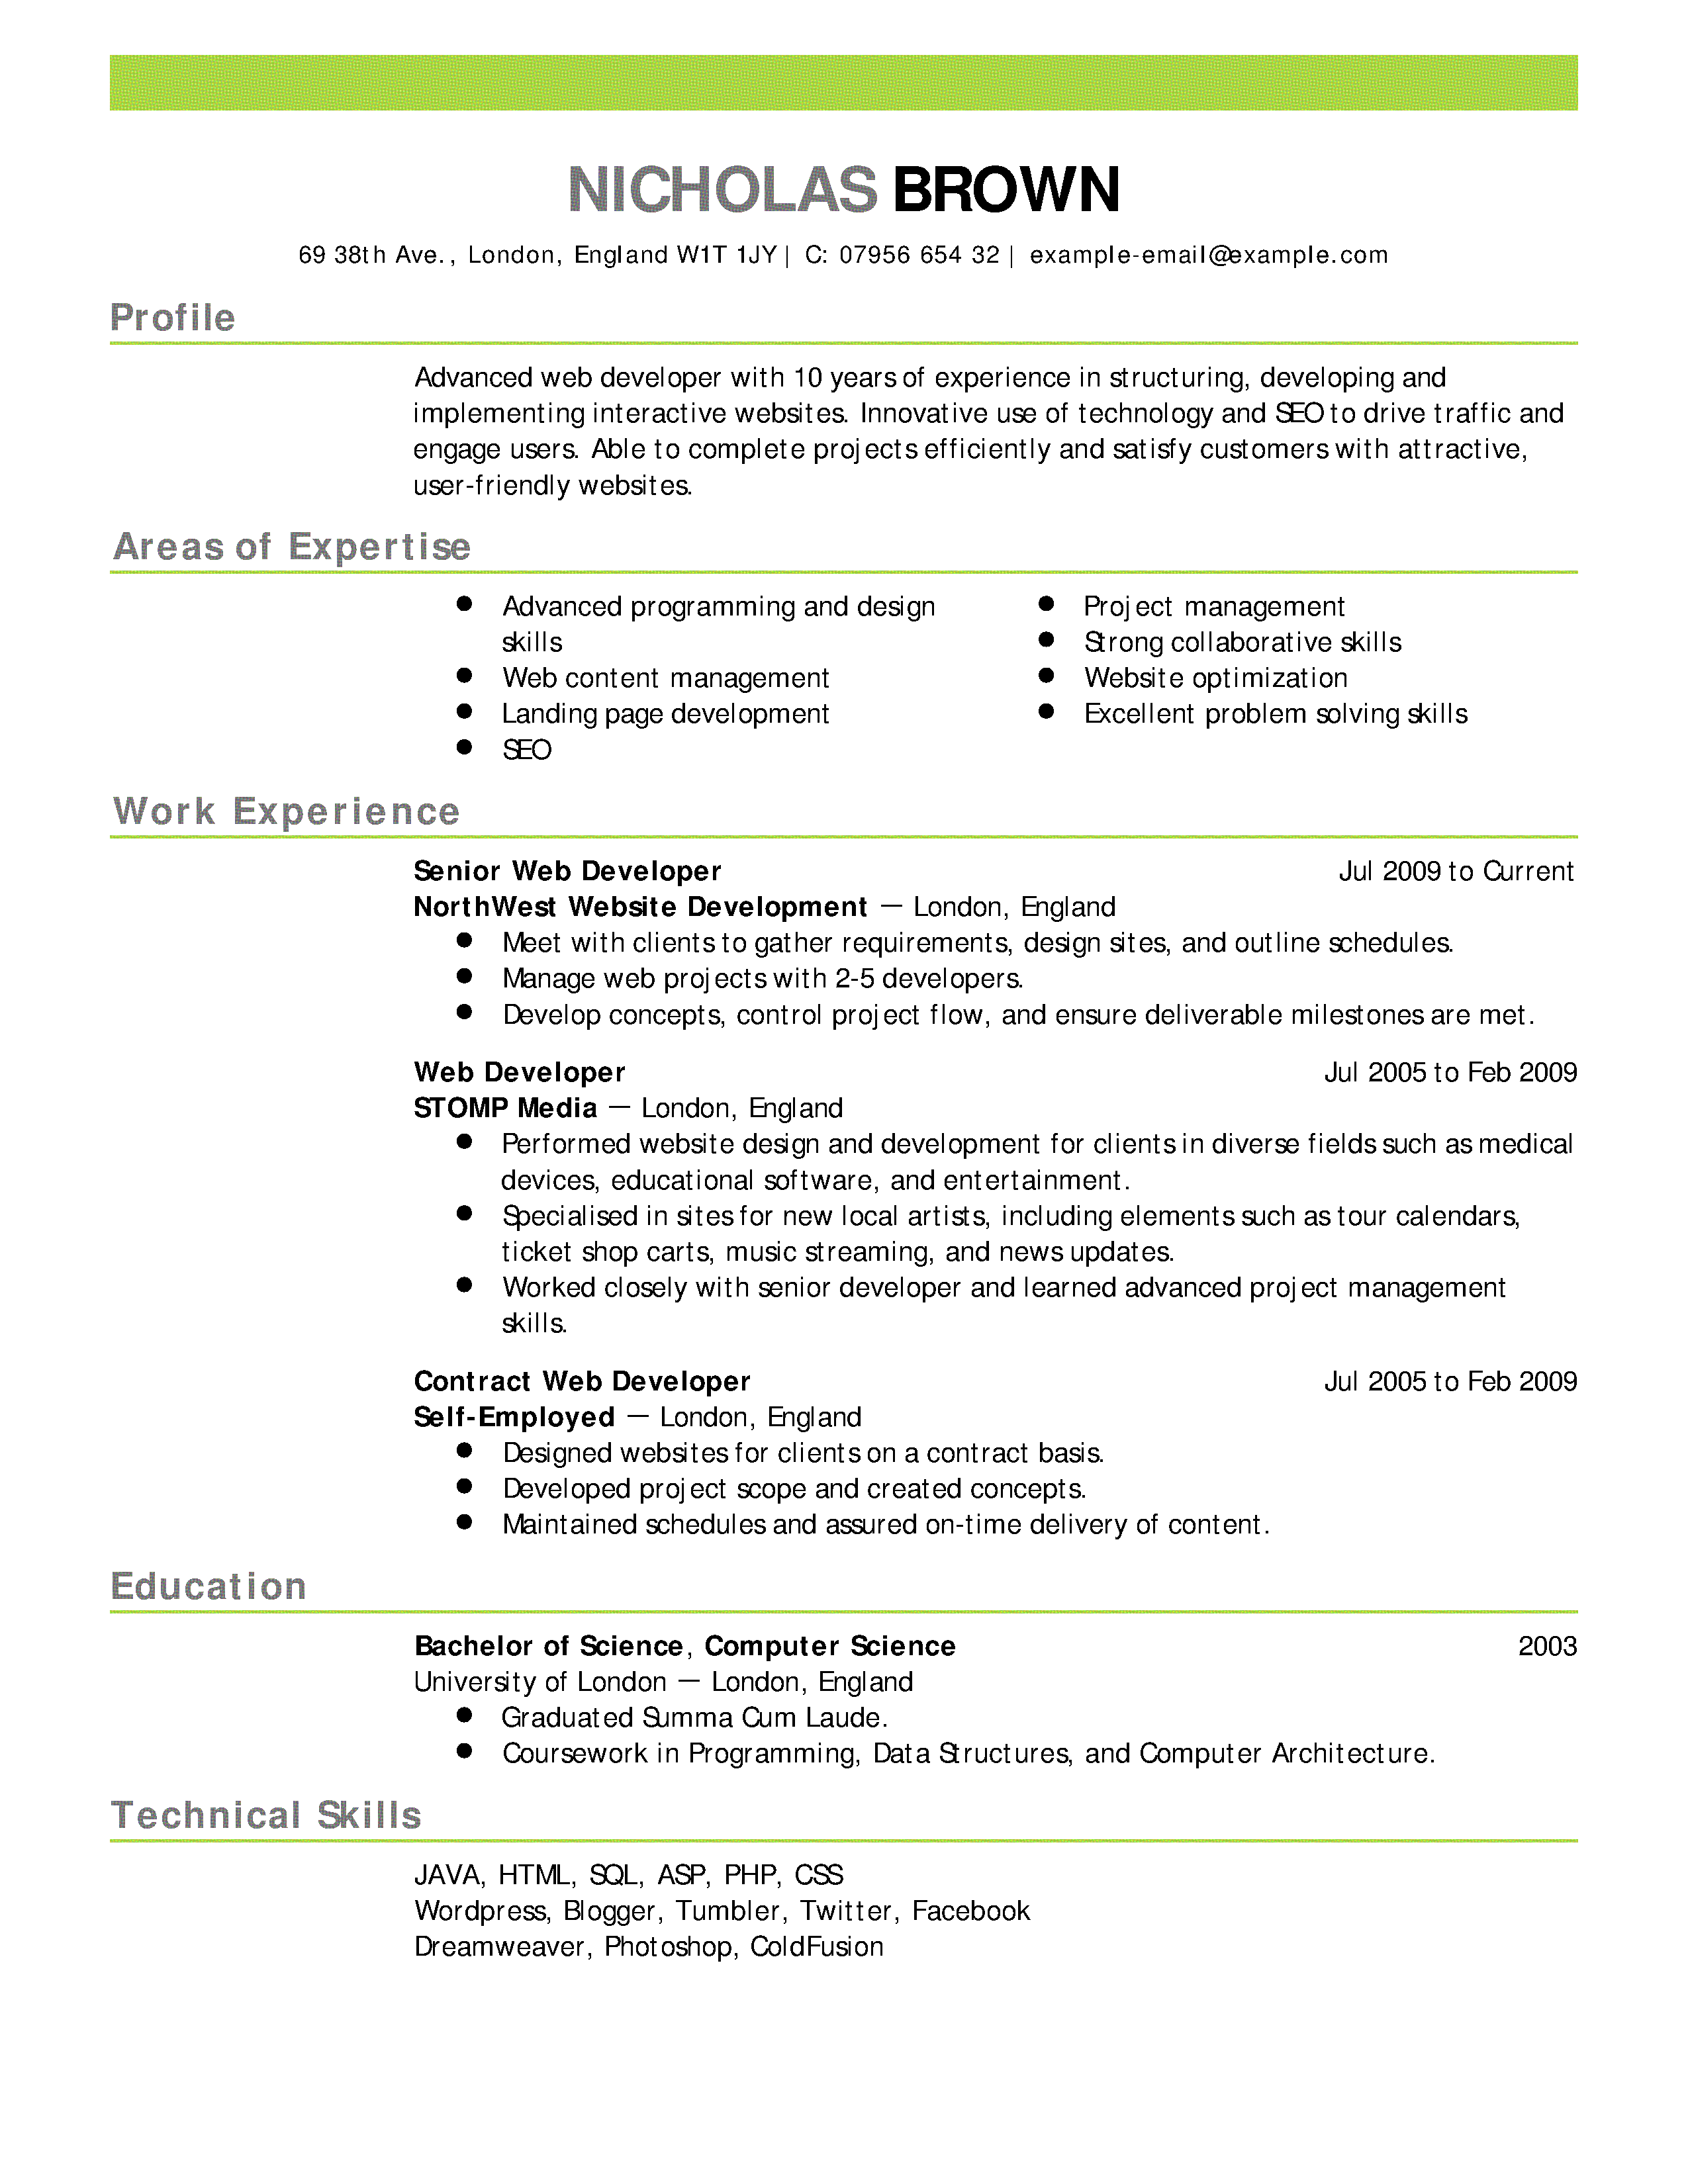 College admissions resume objective. Sample resume for a